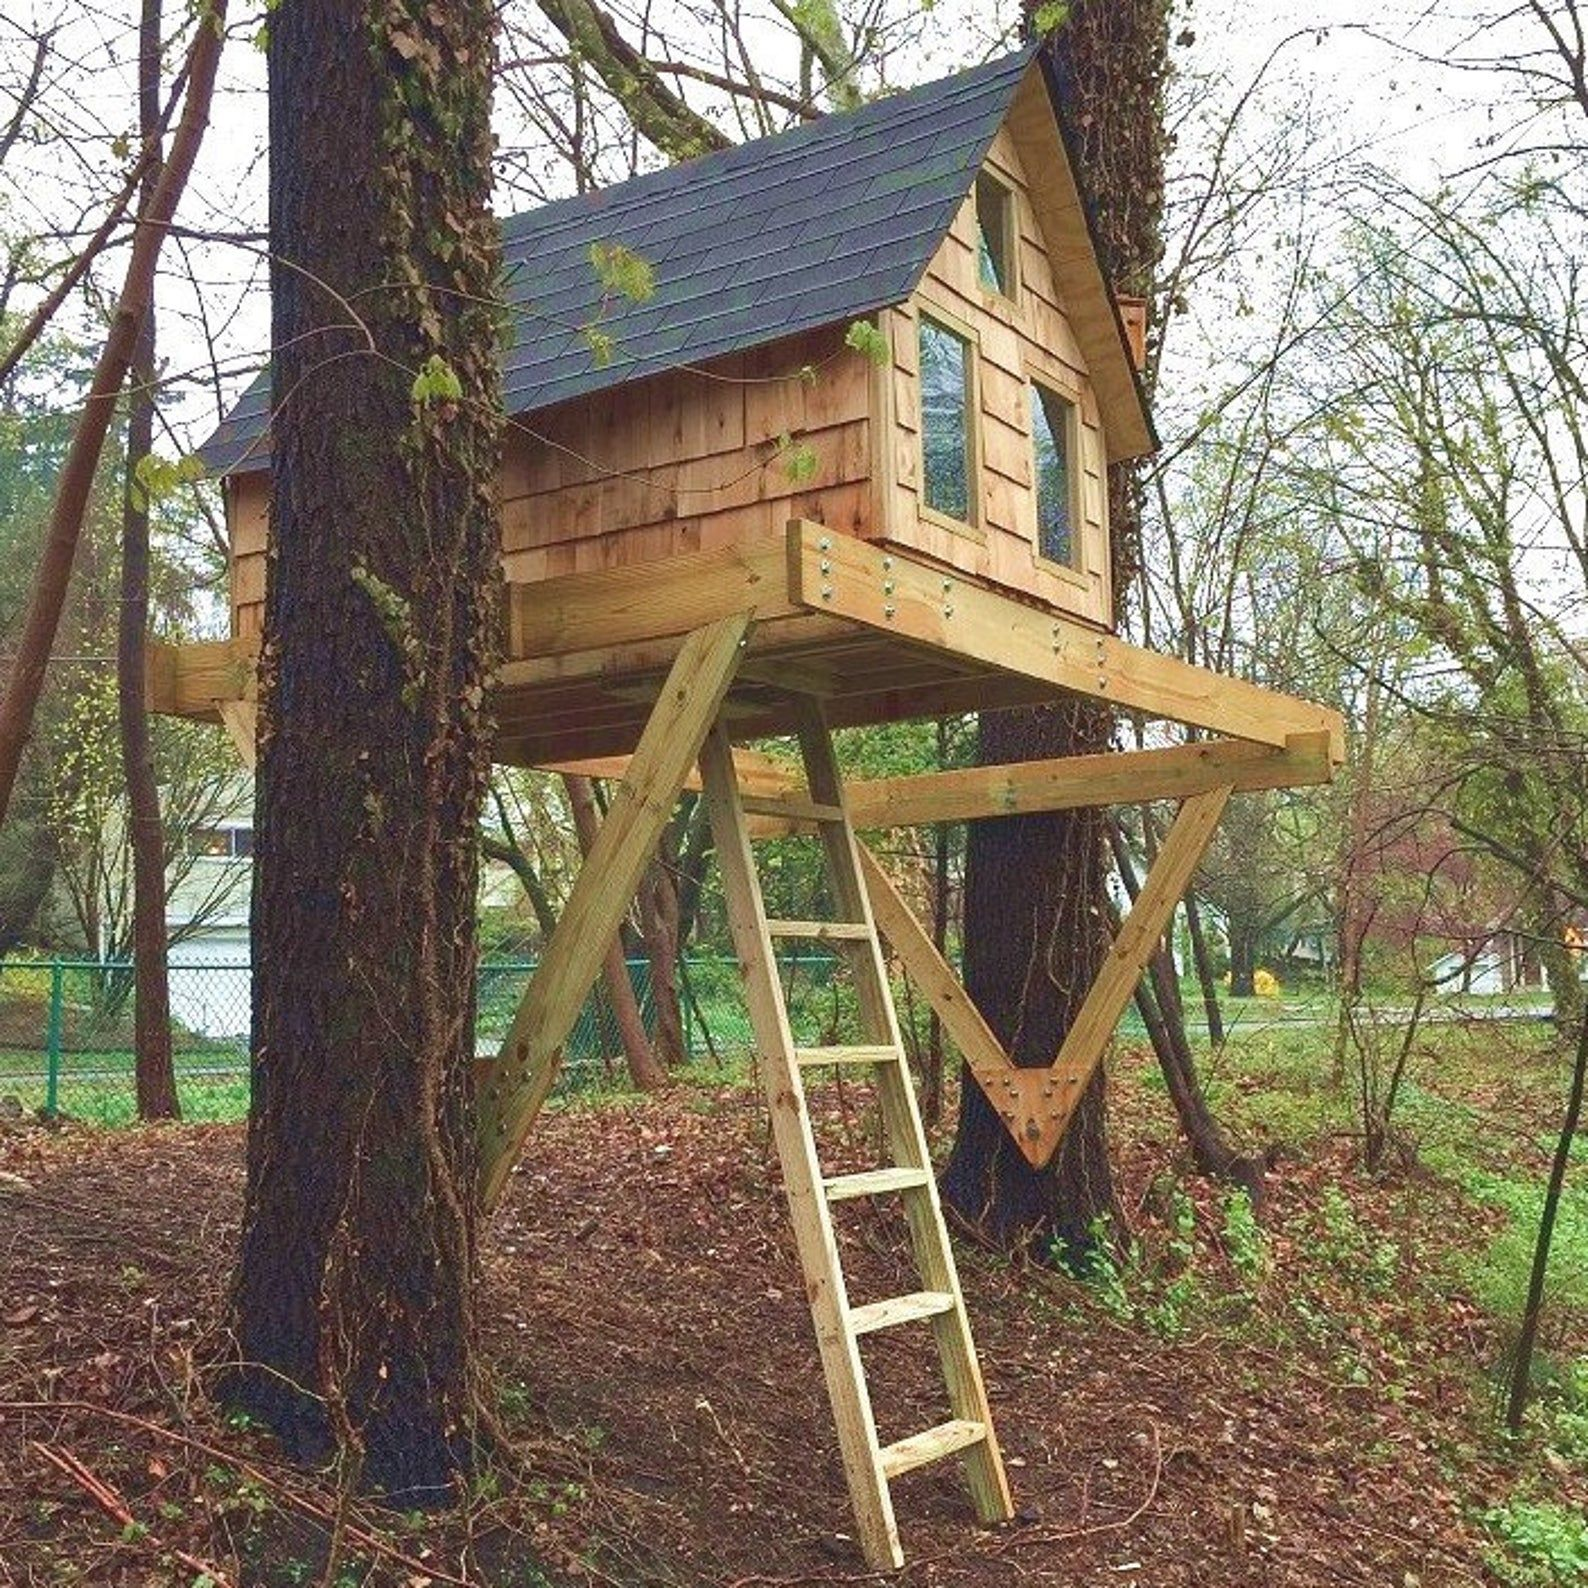 Alpino treehouse - plans for 1 or 2 trees | Tree house ...